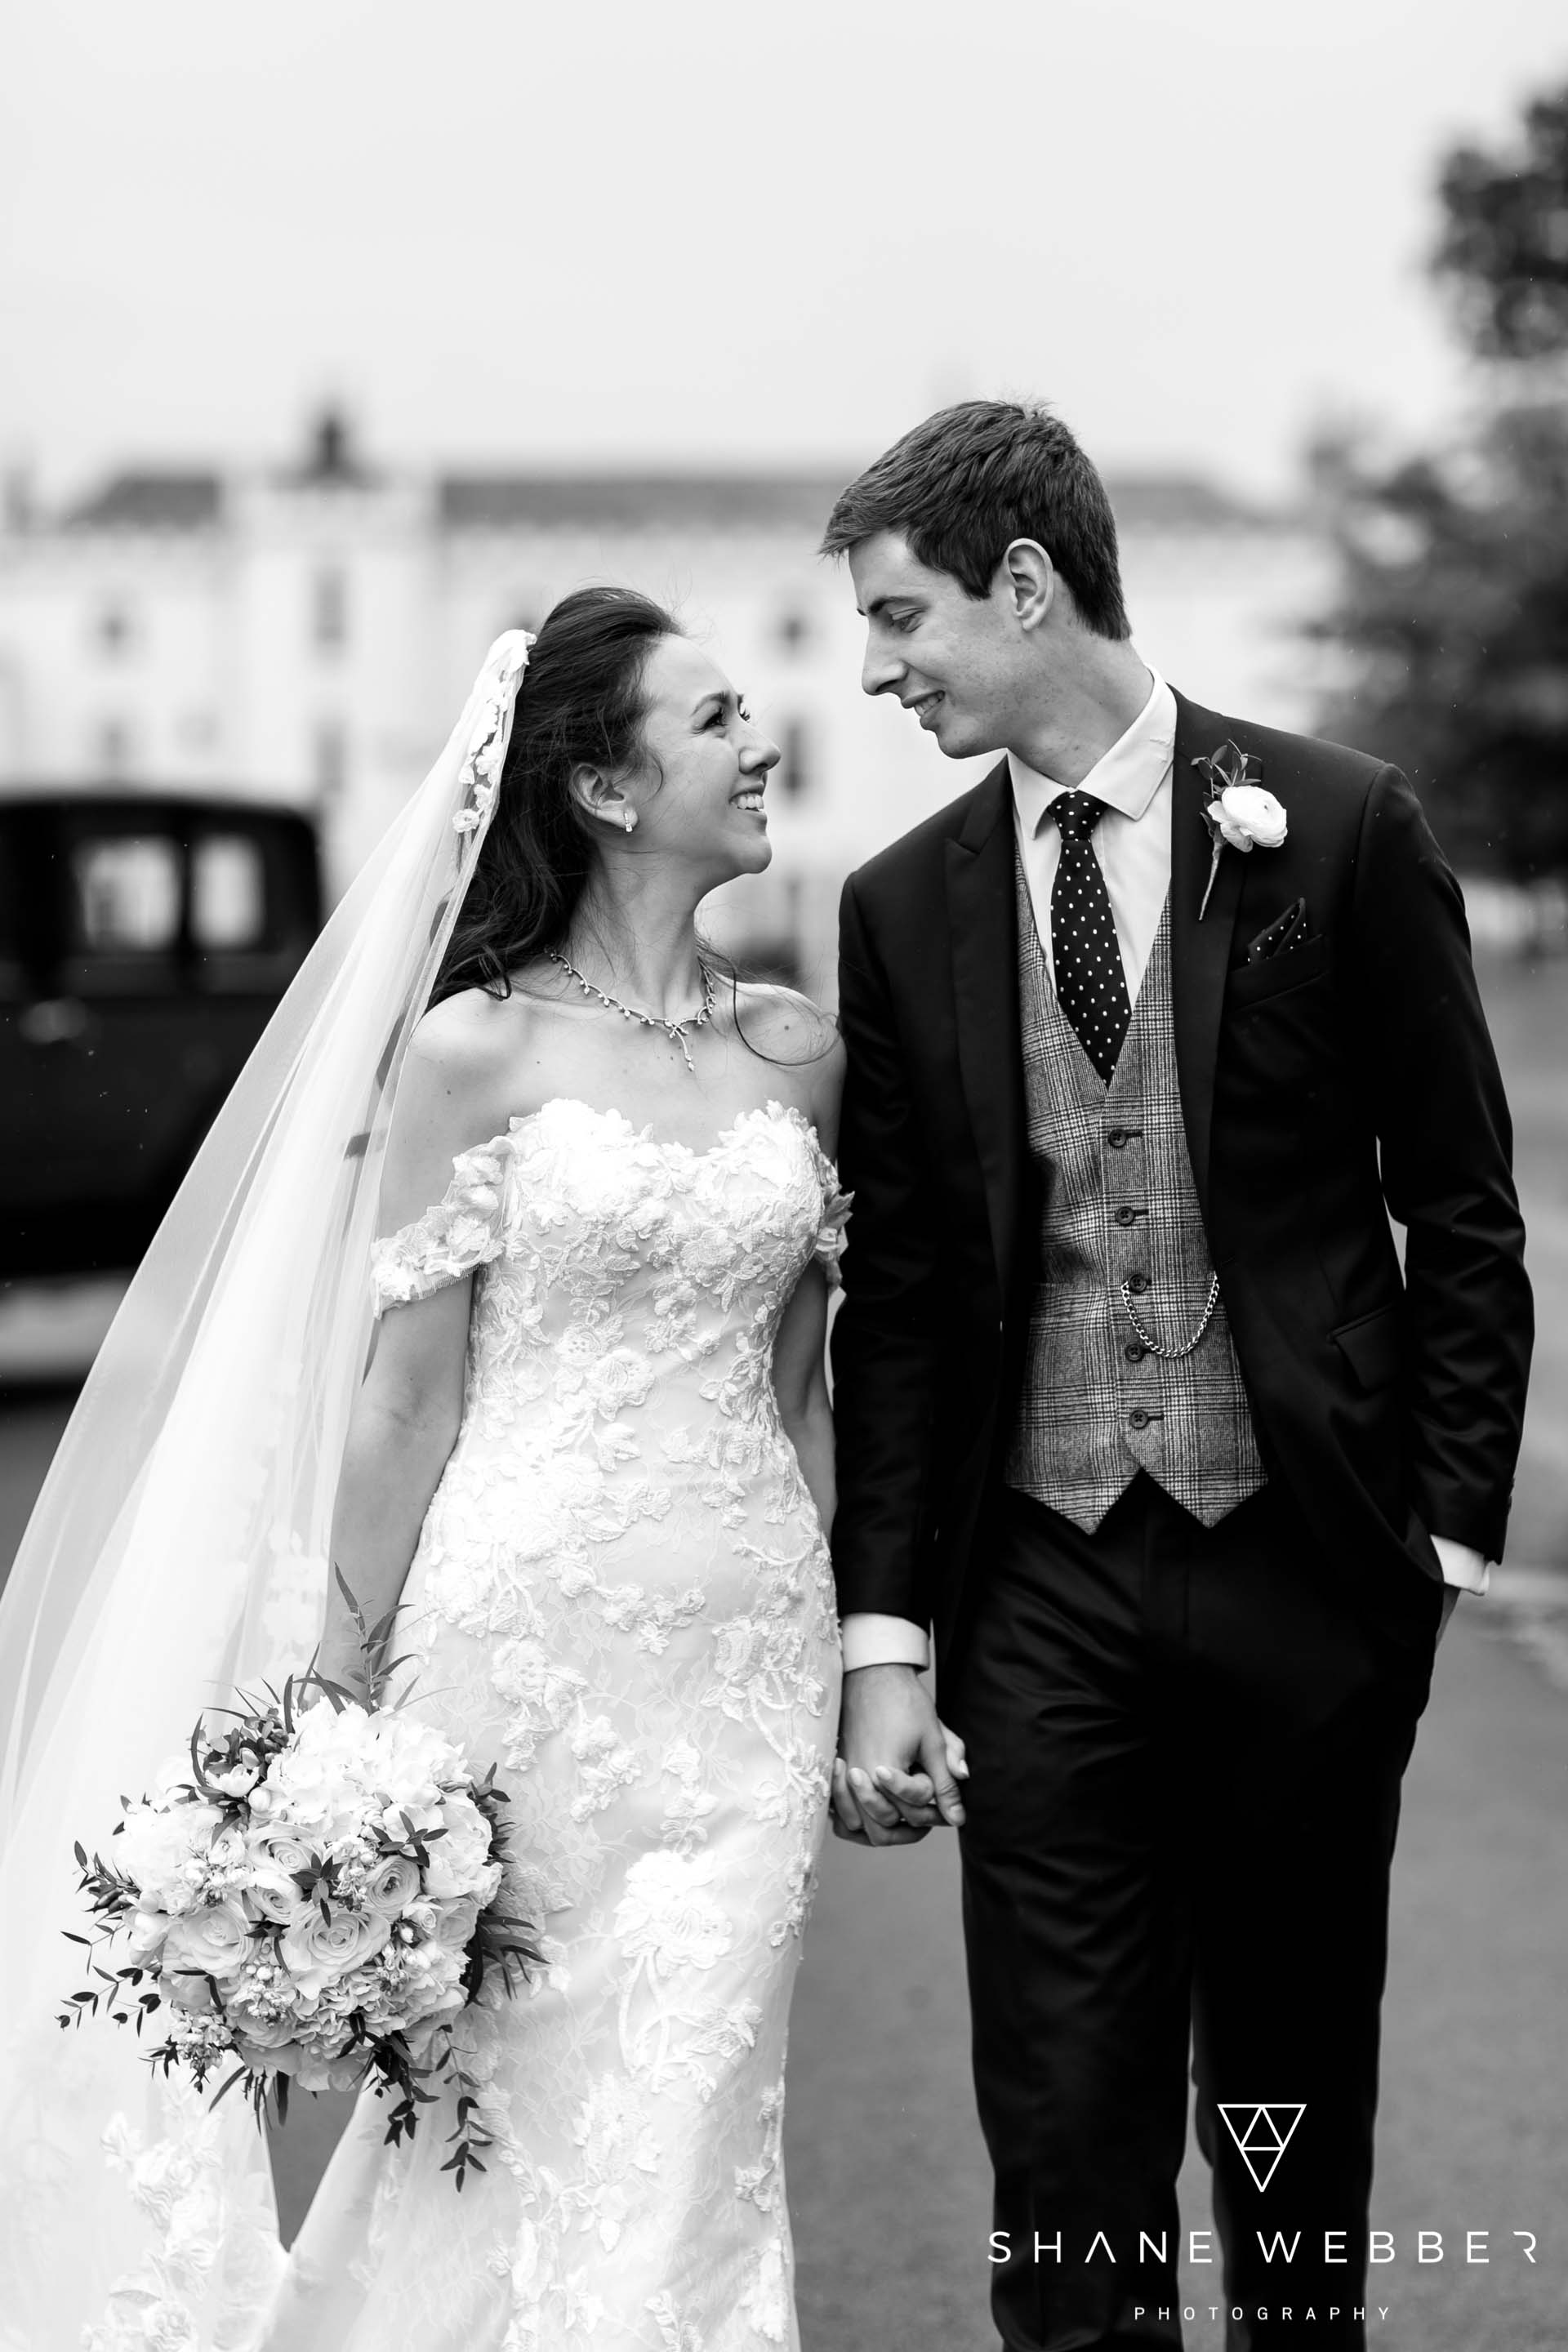 Combermere Abbey wedding planned by Charlotte Elise weddings and events